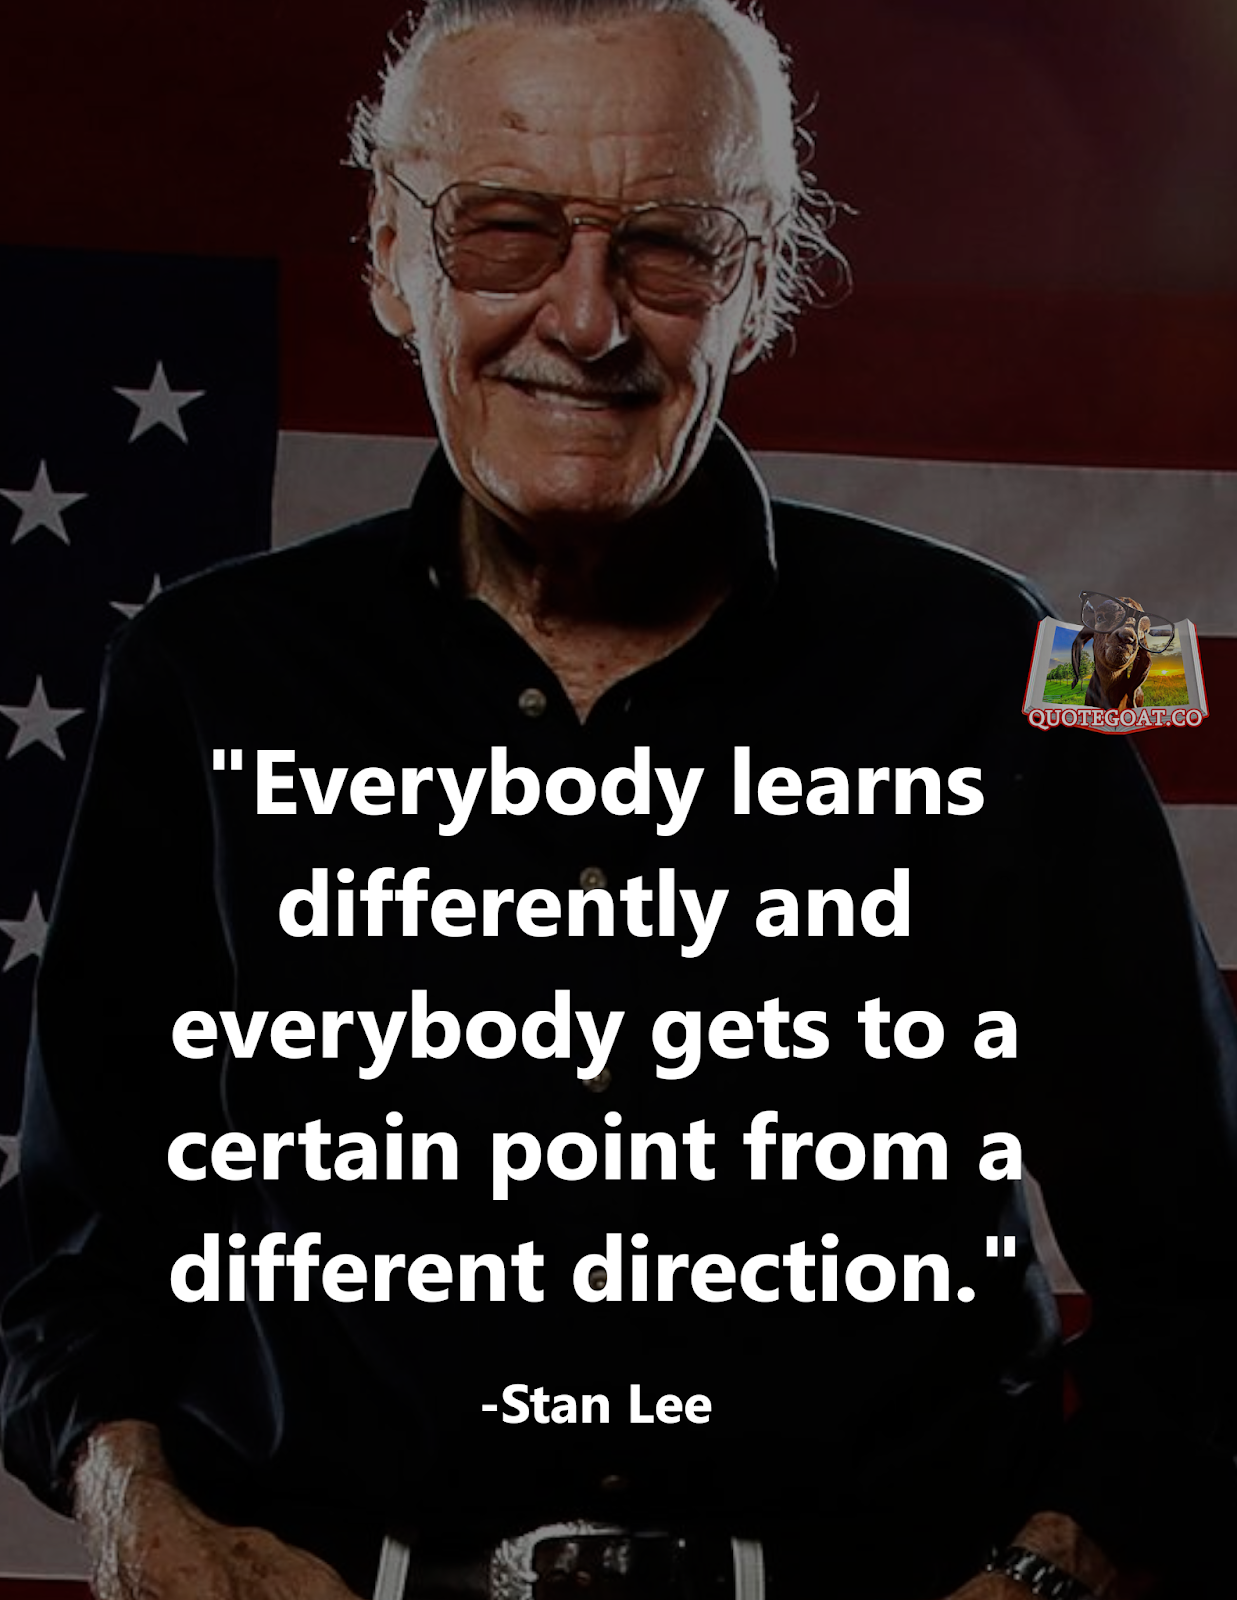 Quote Goat. Daily Quotes: Stan Lee. Learning differently